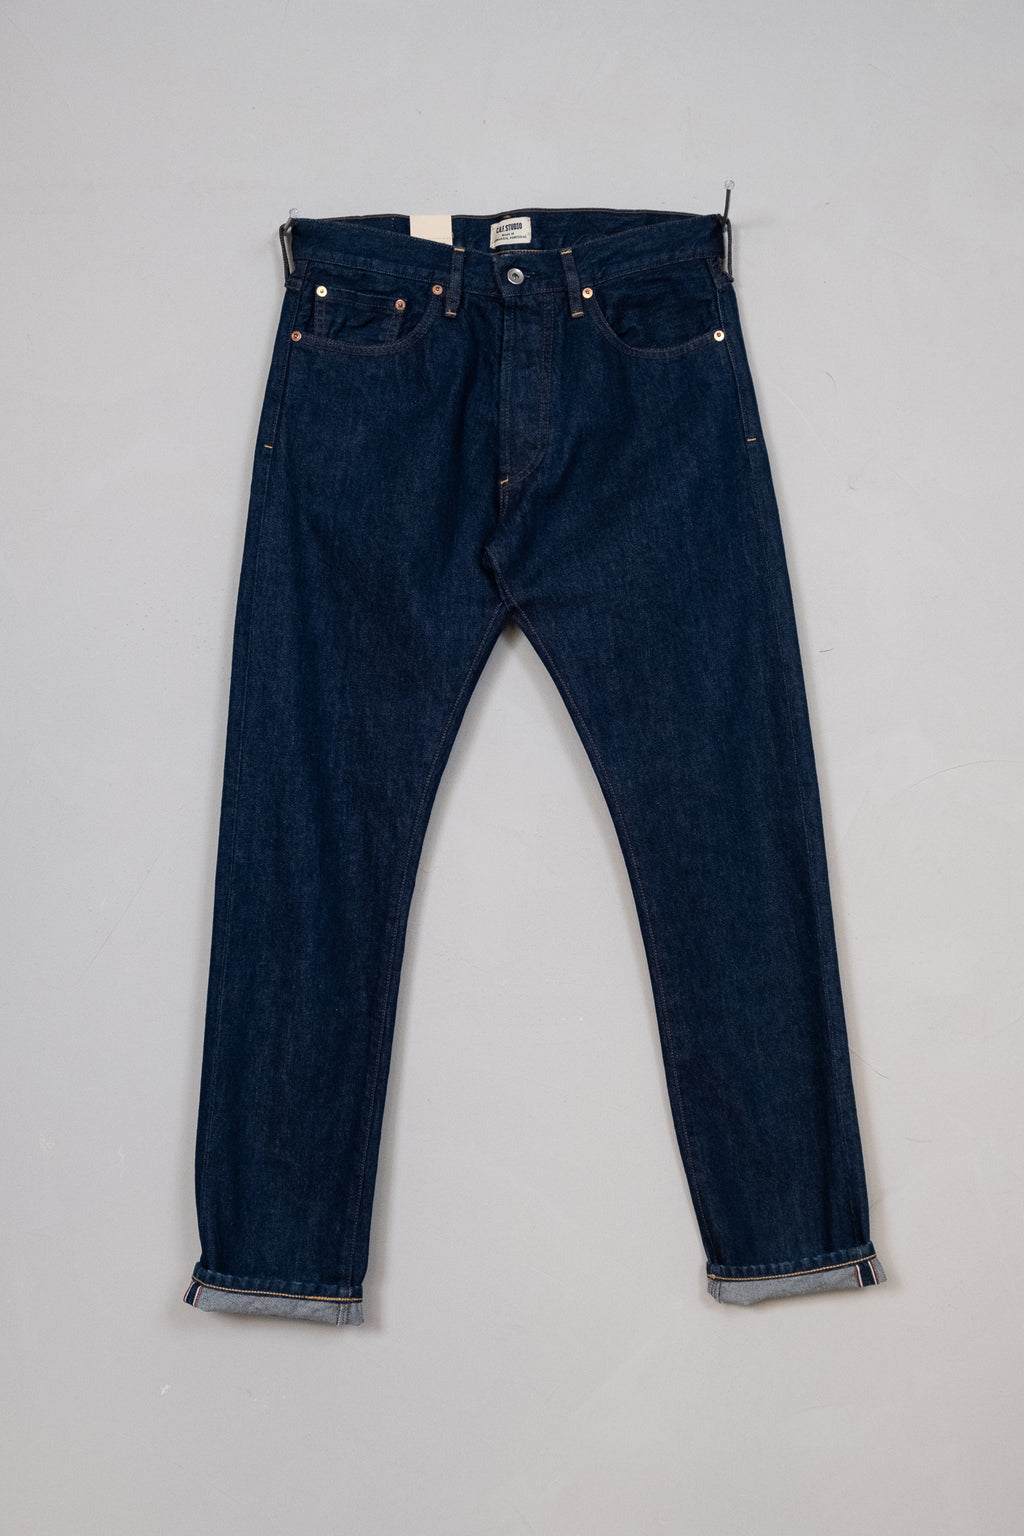 M7 13oz Indigo Selvedge - Rinsed